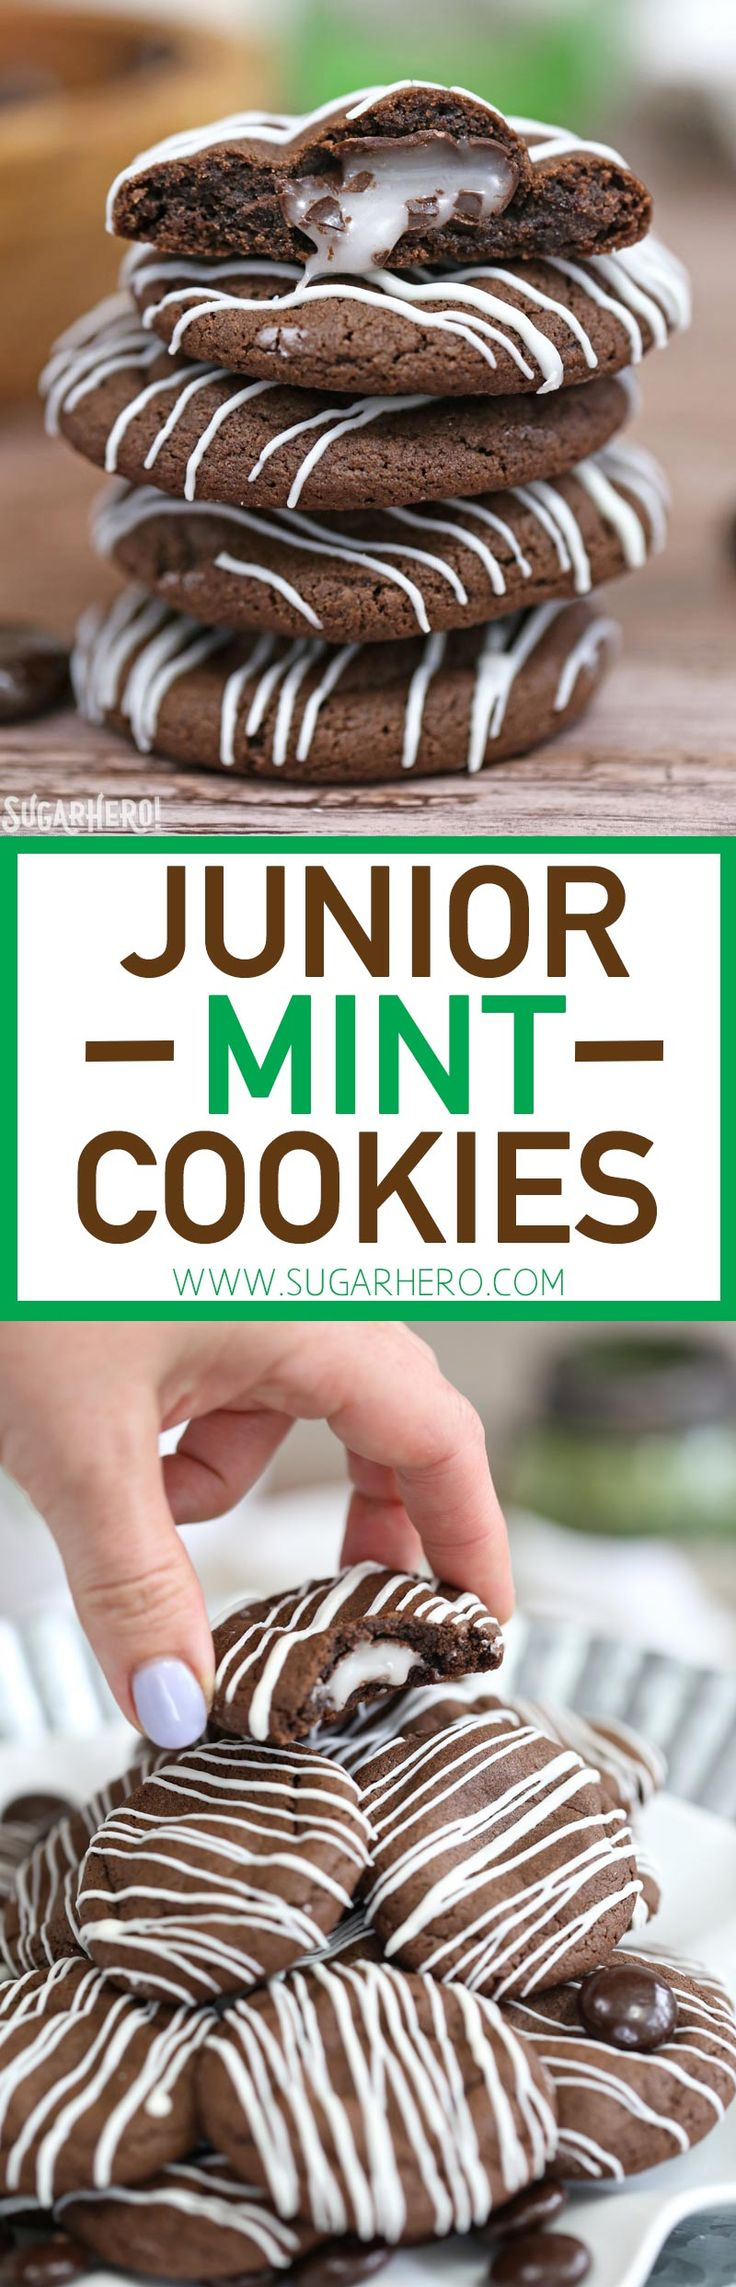 Junior Mint Cookies are soft and chewy chocolate-mint cookies, with a Junior Mint baked right into the center! | From http://SugarHero.com (Chocolate Chip Shortbread)